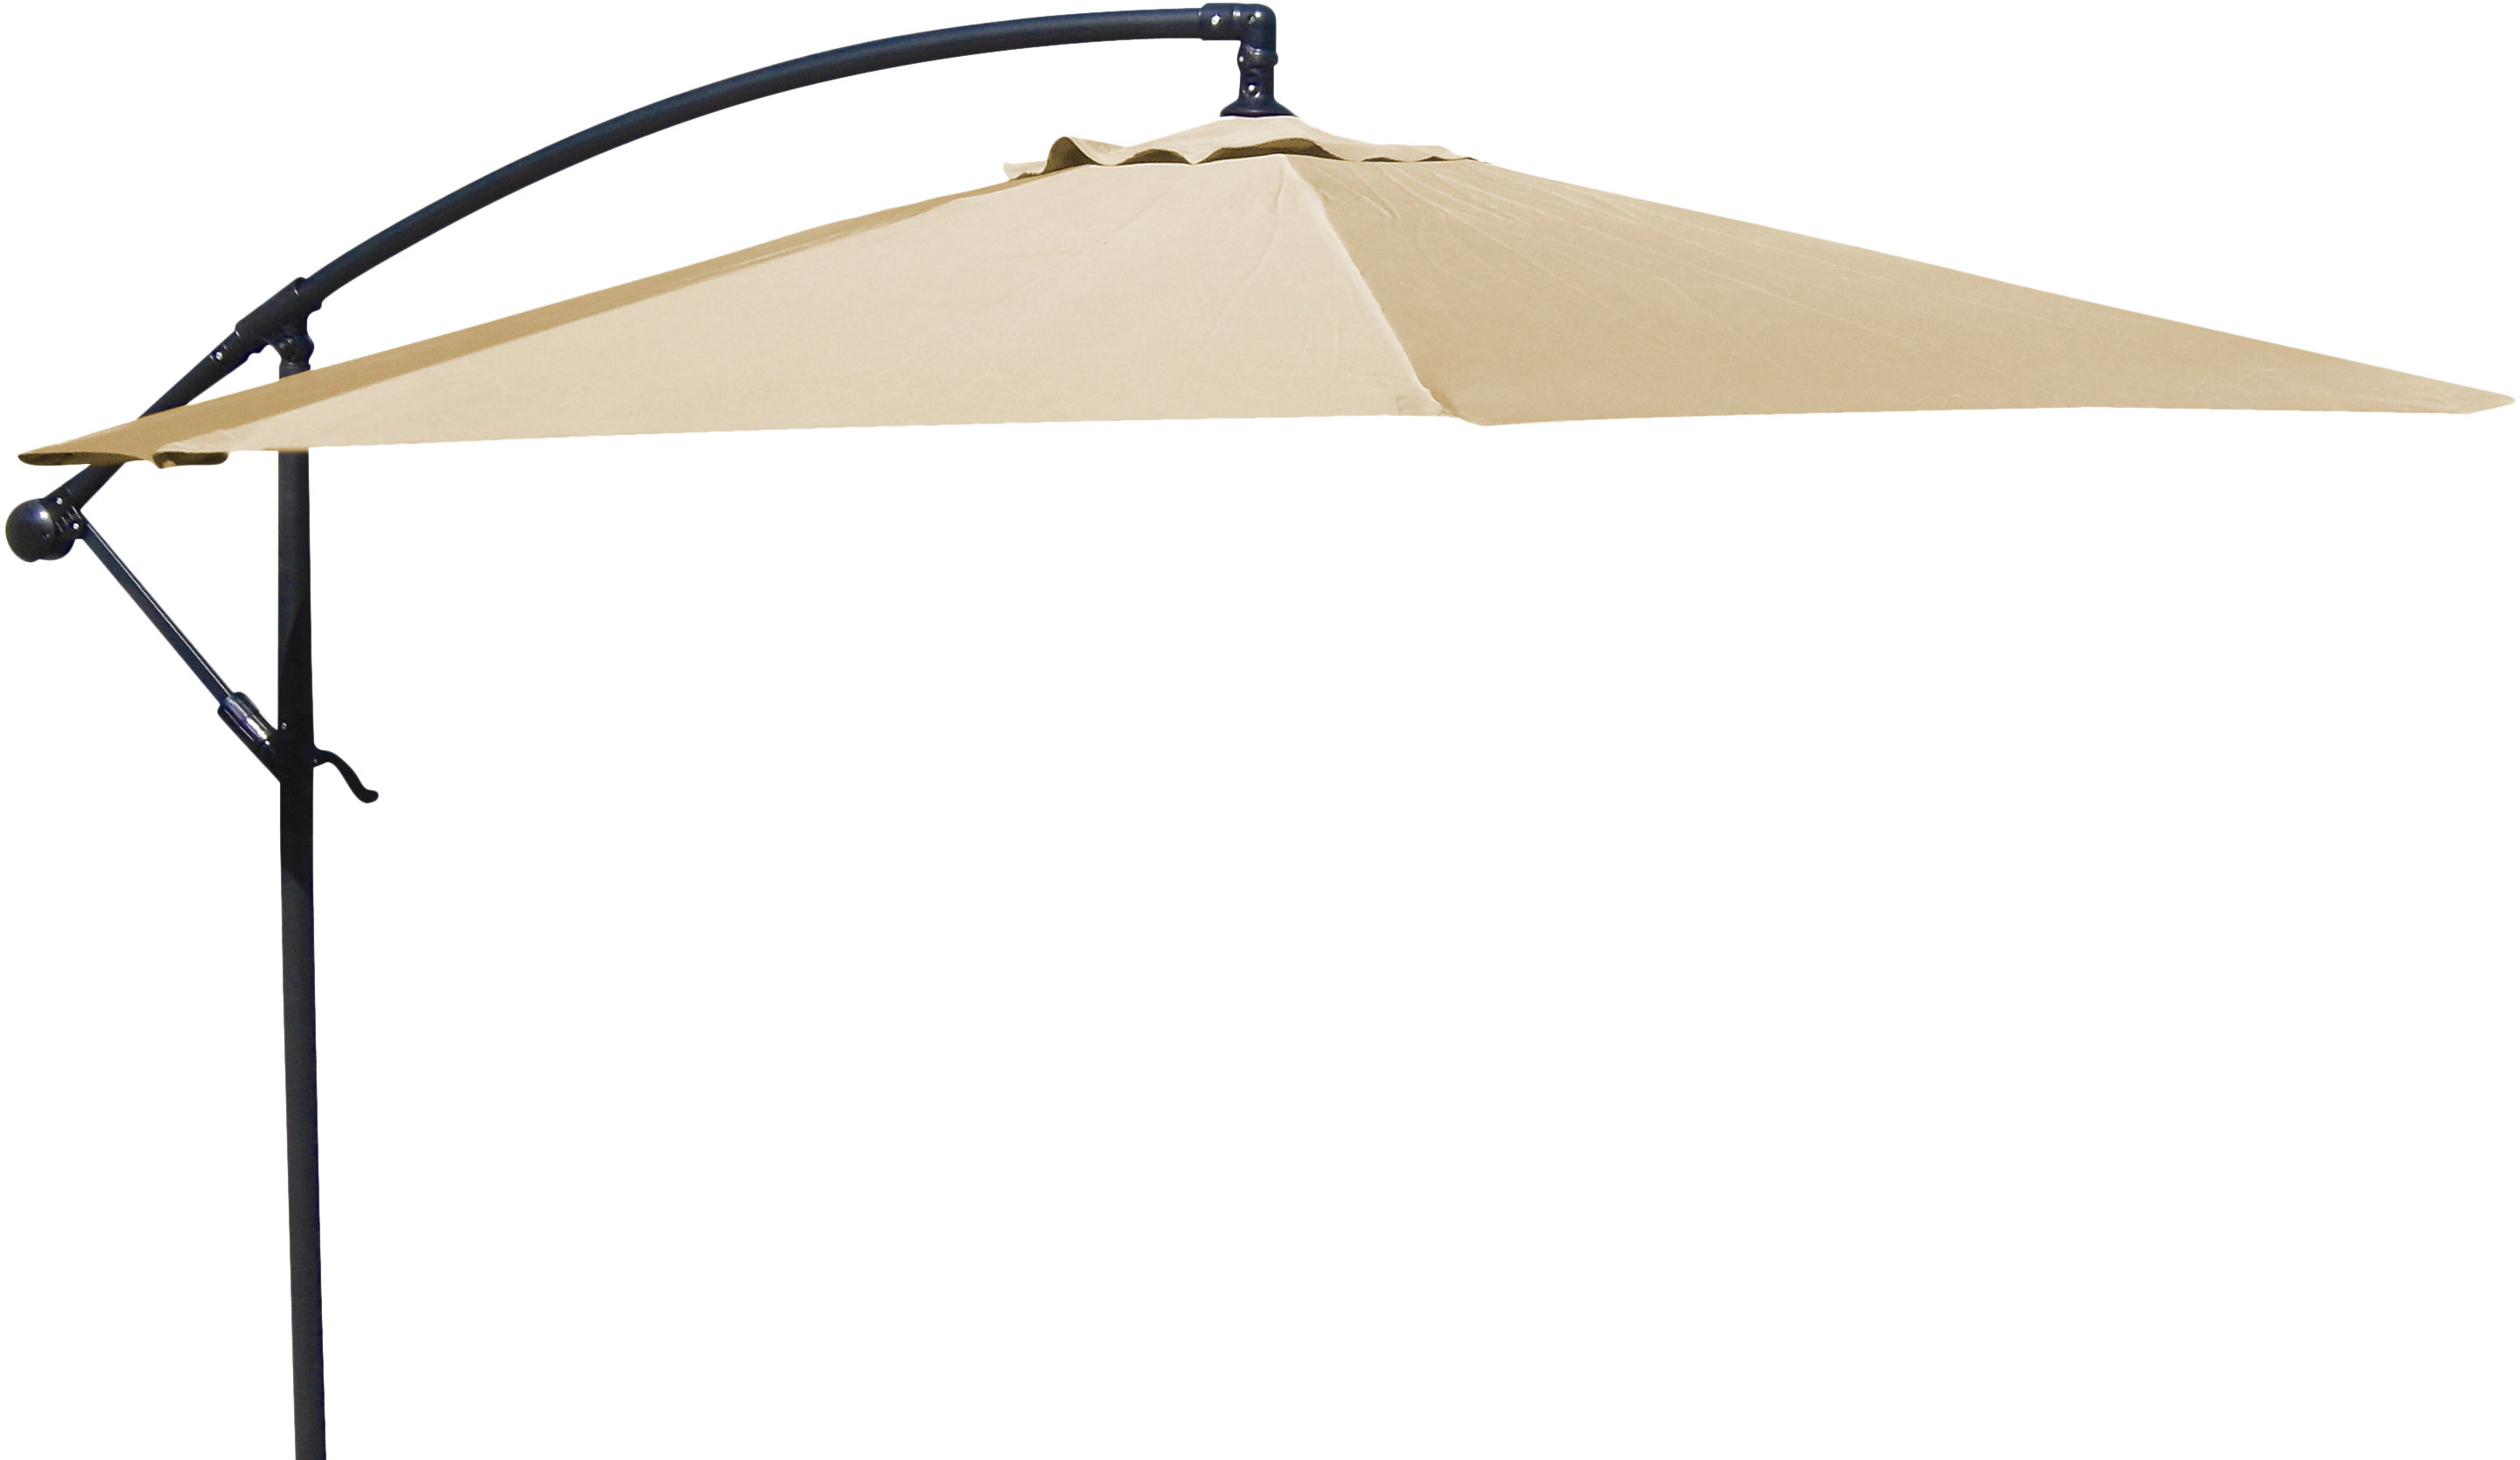 Trotman 10' Cantilever Umbrella In 2020 Bostic Cantilever Umbrellas (View 5 of 20)